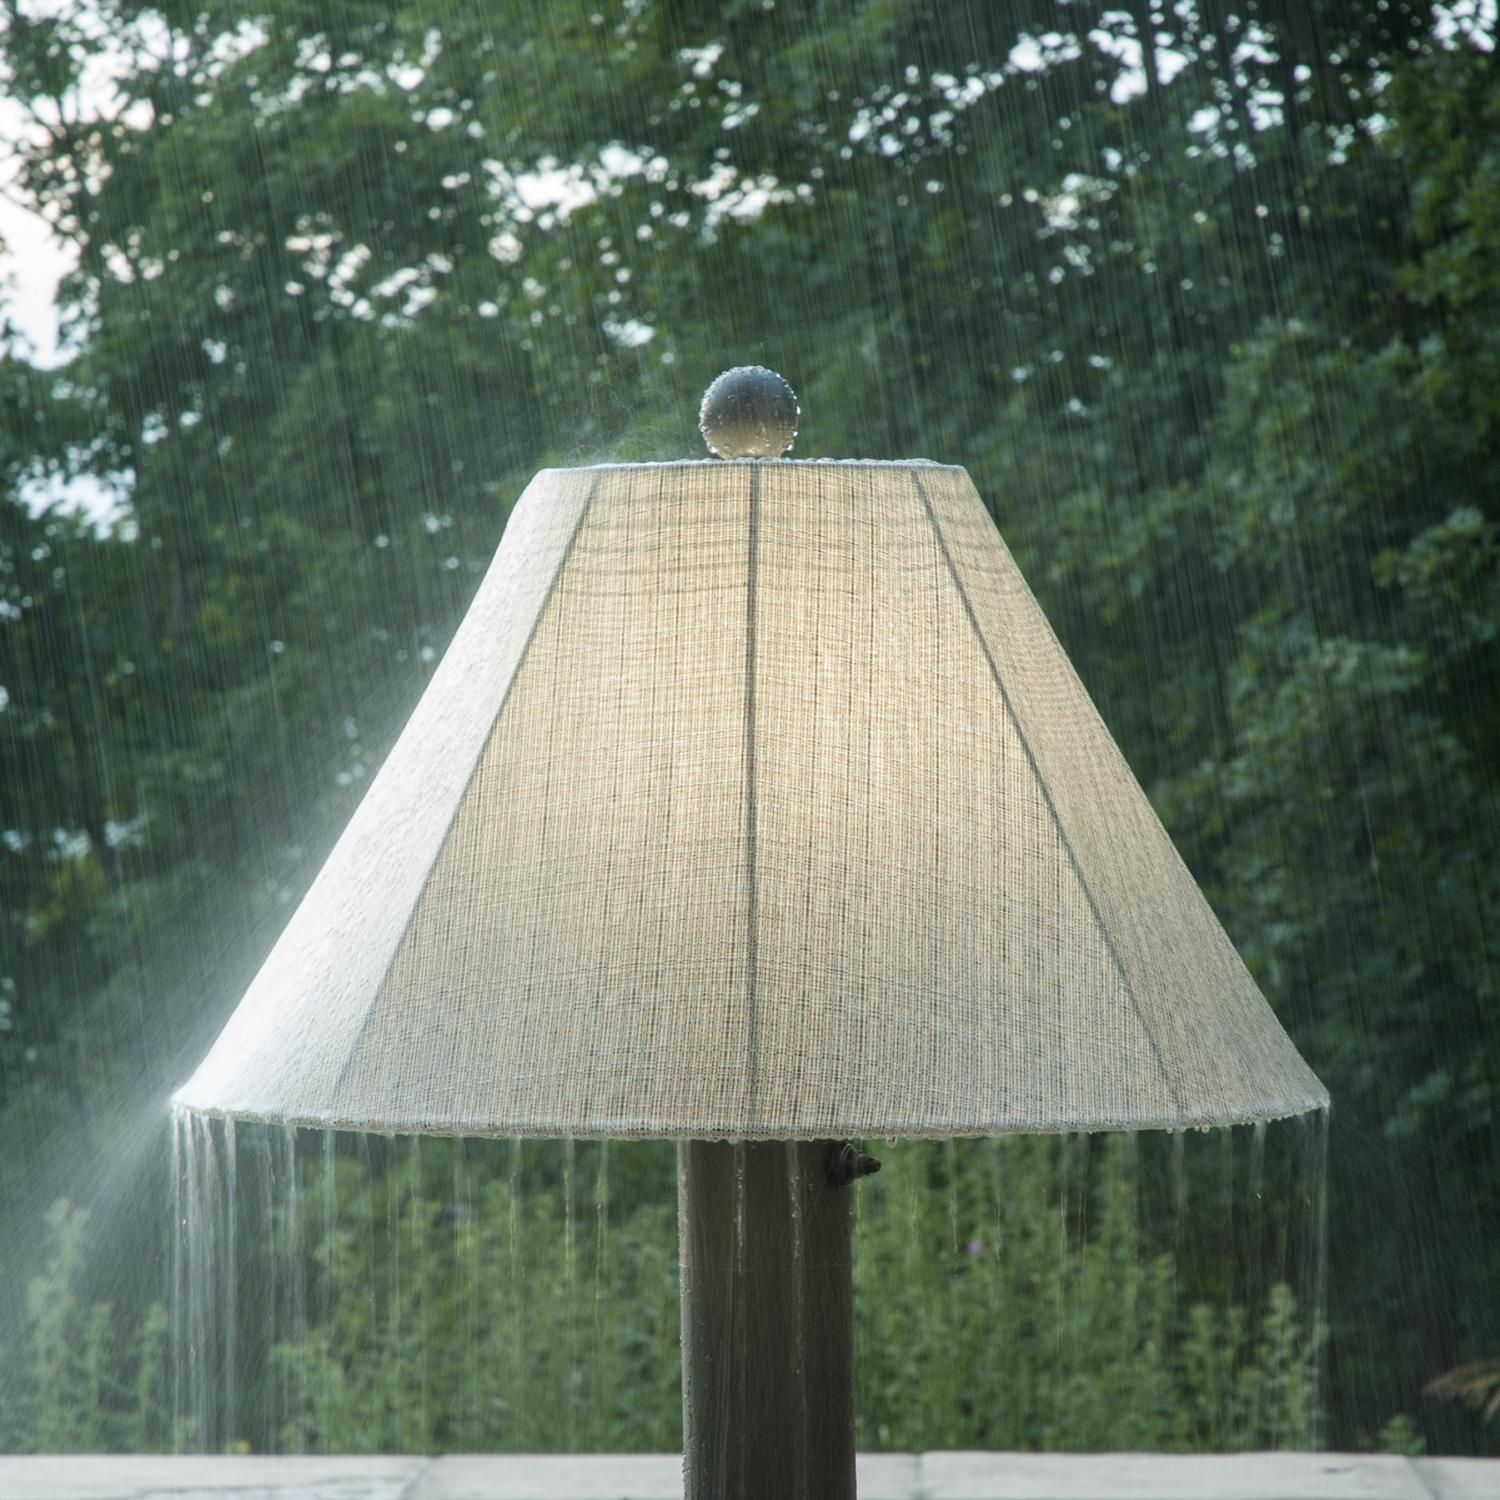 Patio Living Concepts Catalina Ii 63 1 2 Inch Outdoor Floor Lamp With Table Bronze Sunbrella Fabric Shade Shown In Rain